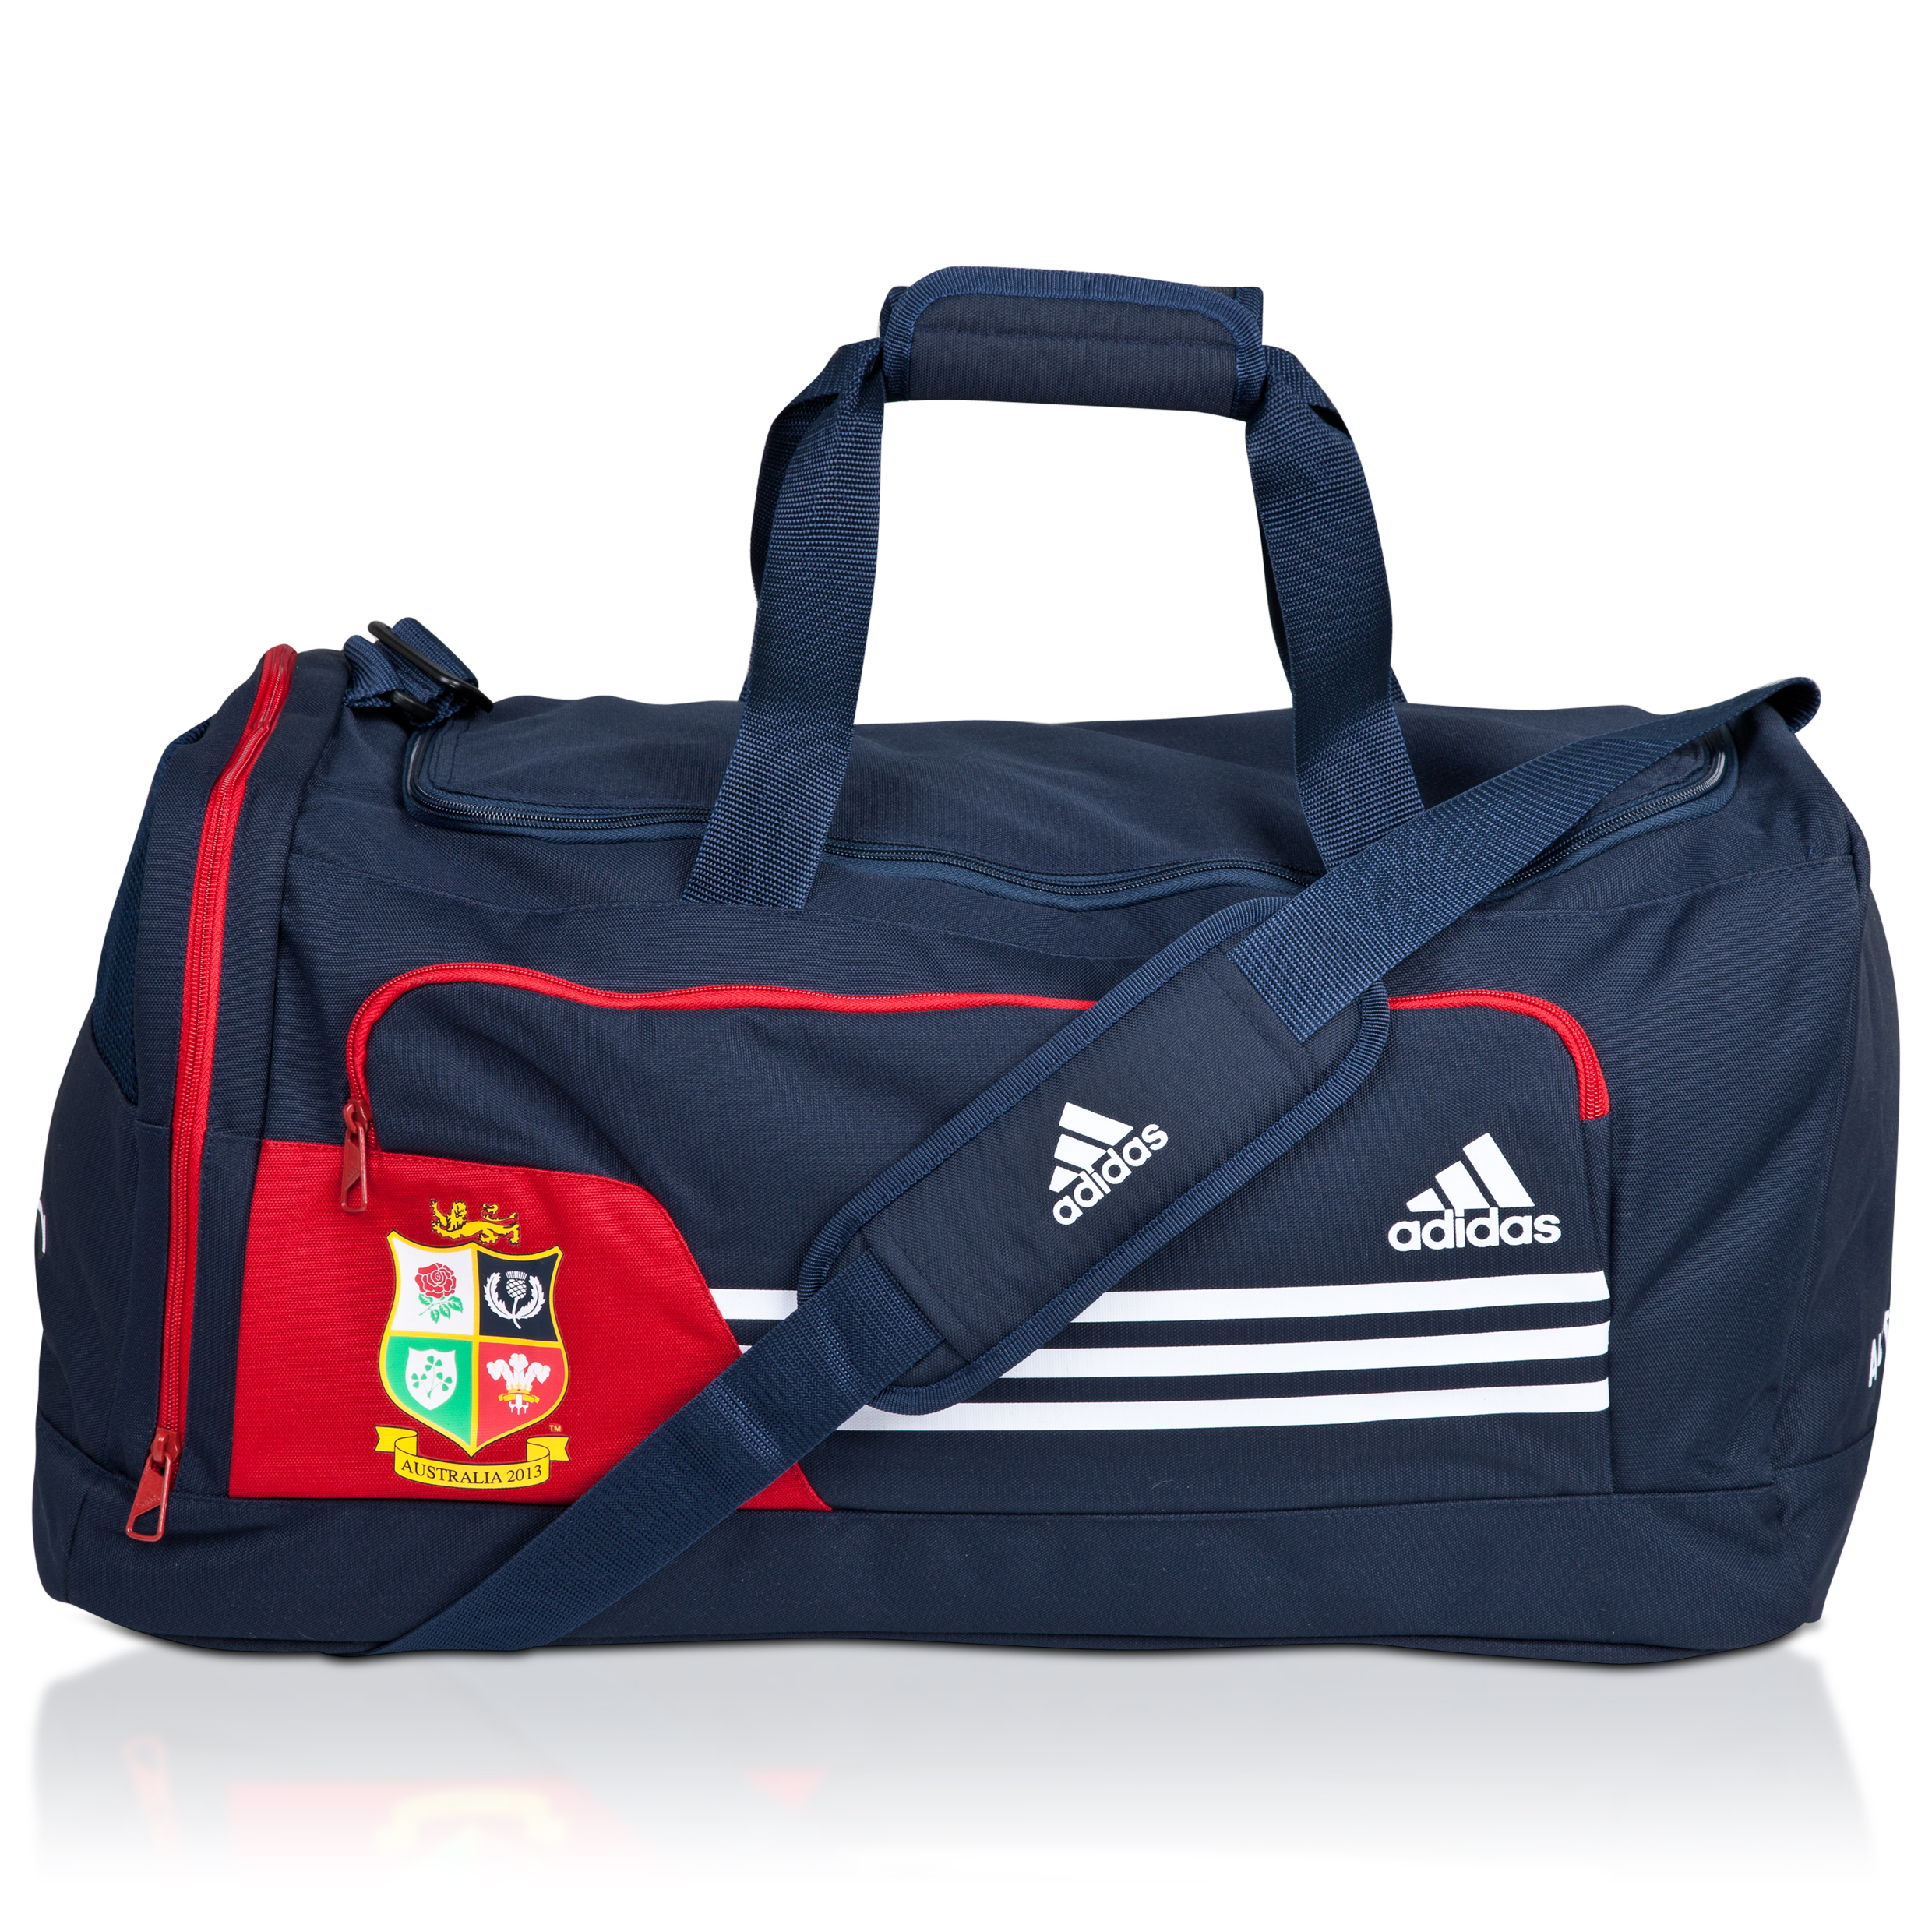 adidas British and Irish Lions Teambag - Collegiate Navy/University Red